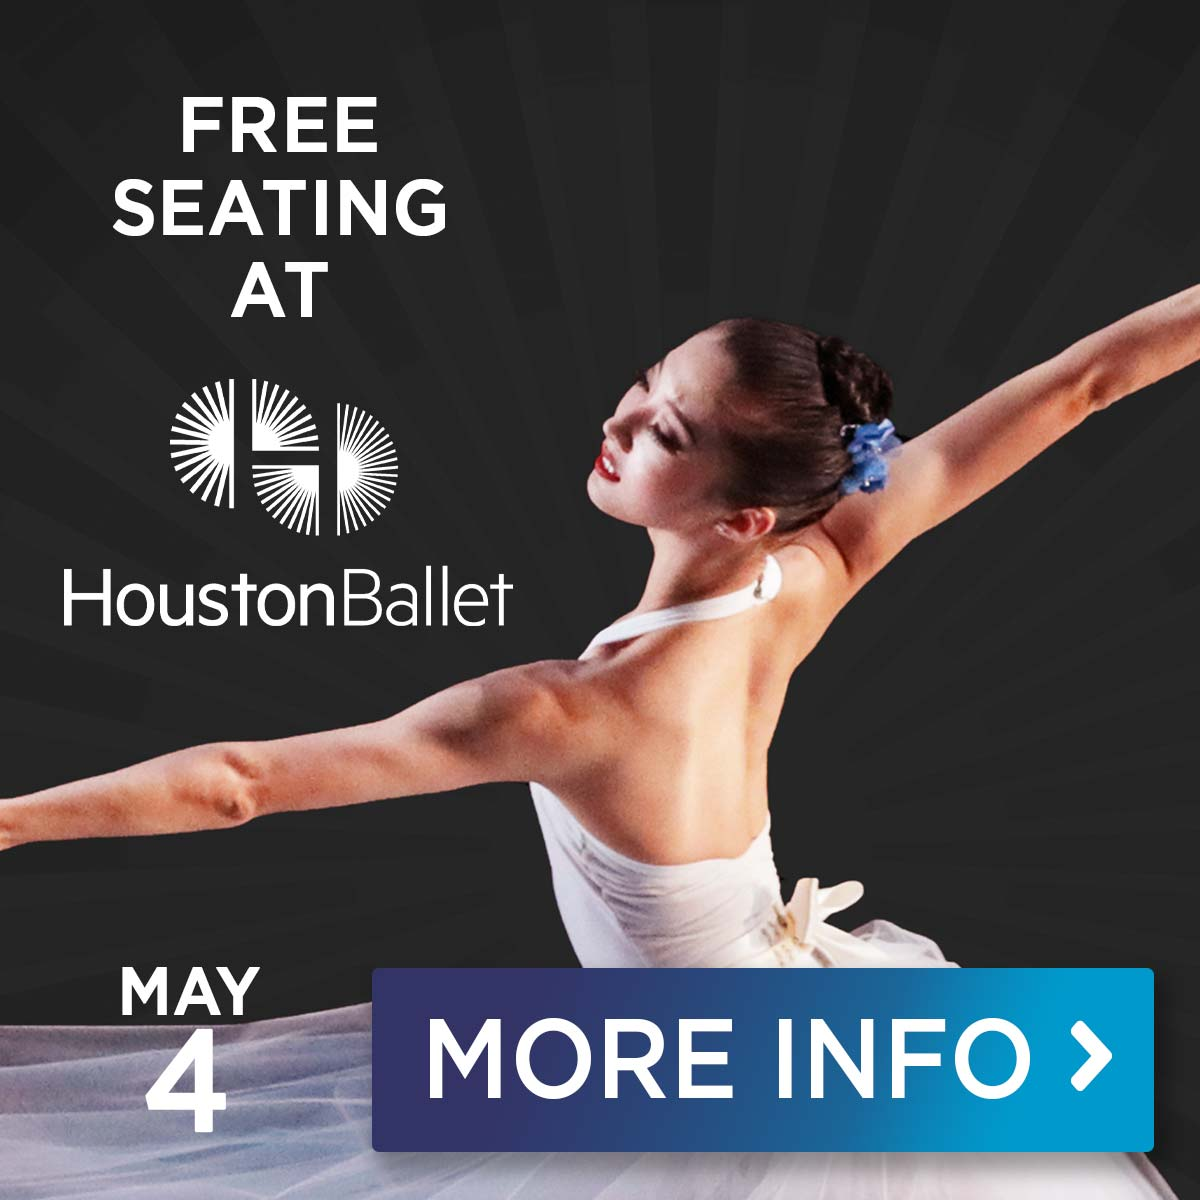 Houston Ballet at The Pavilion May 4